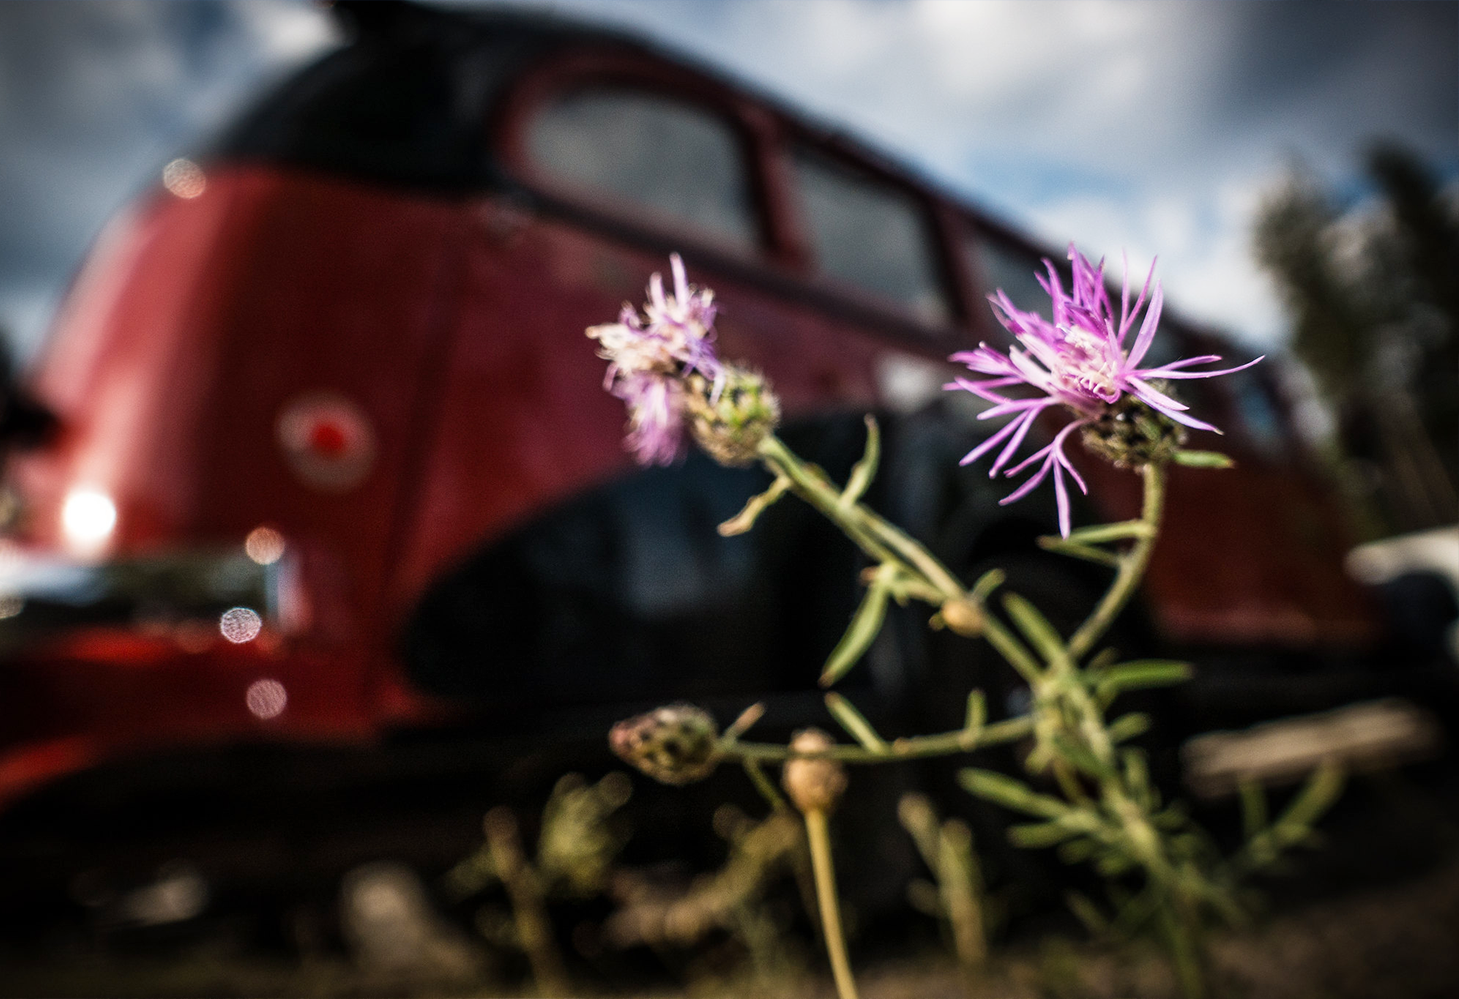 Purple spotted knapweed grows alongside the road next to a large red bus